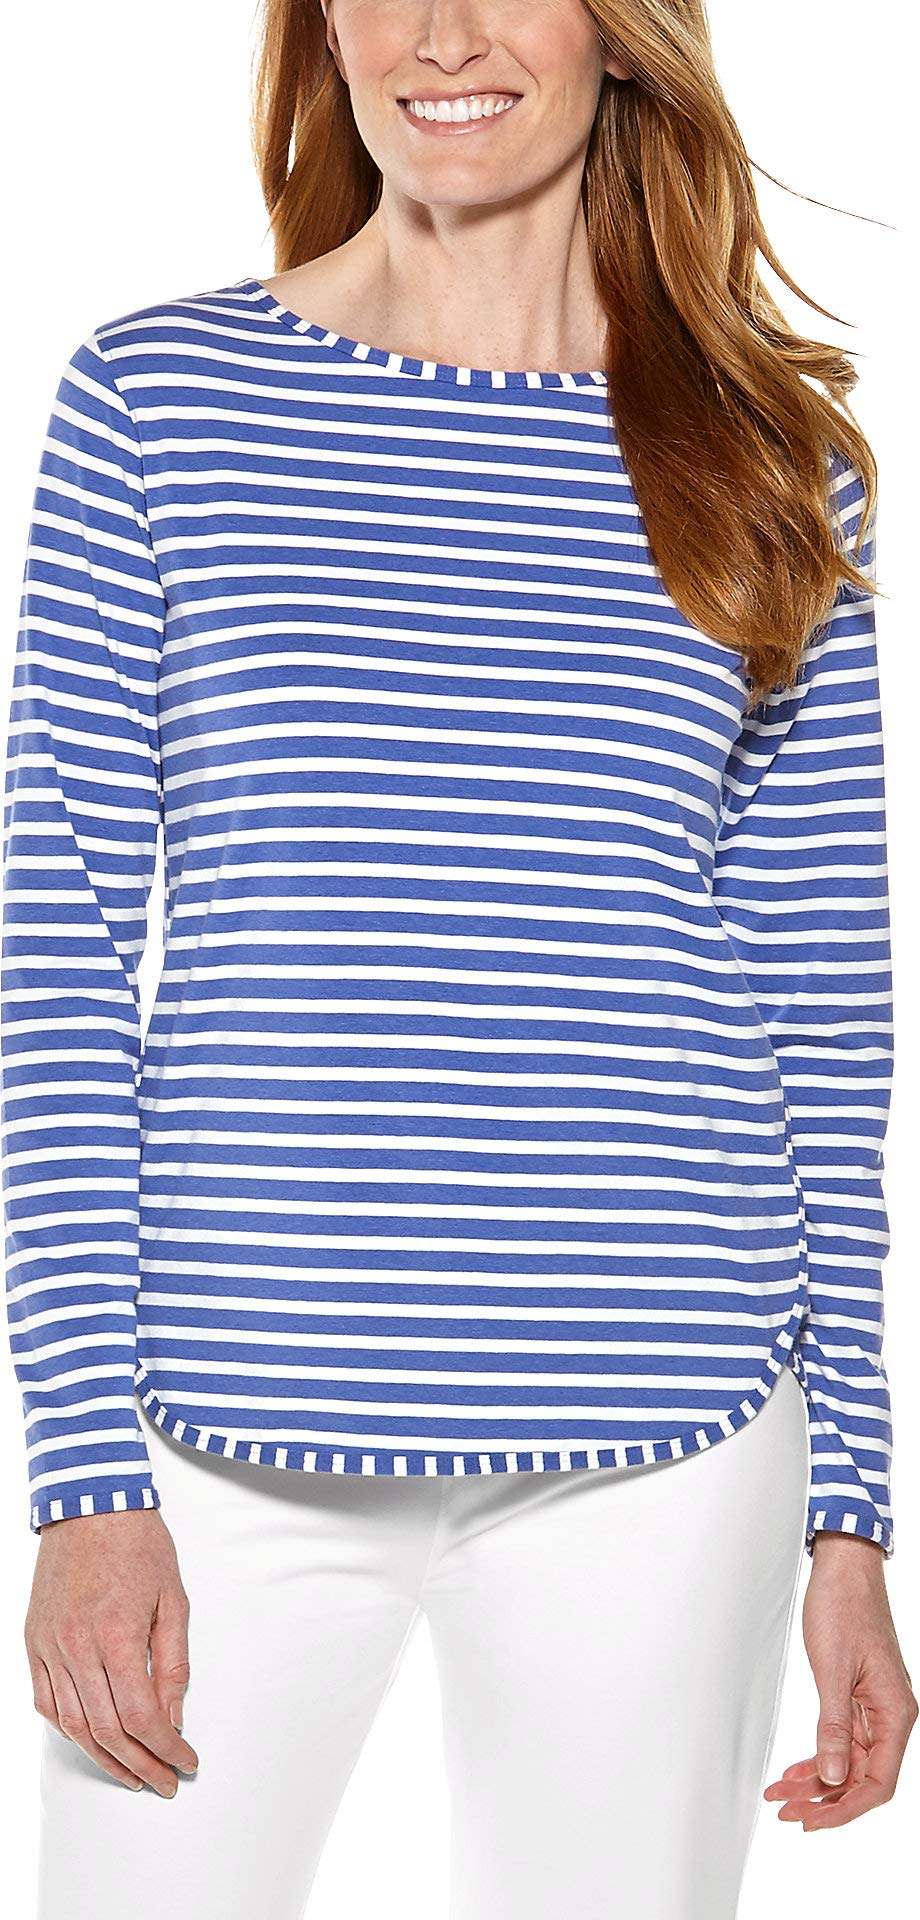 Coolibar UPF 50+ Women's Heyday Side Split Shirt - Sun Protective (3X- Empire Blue/White Stripe)